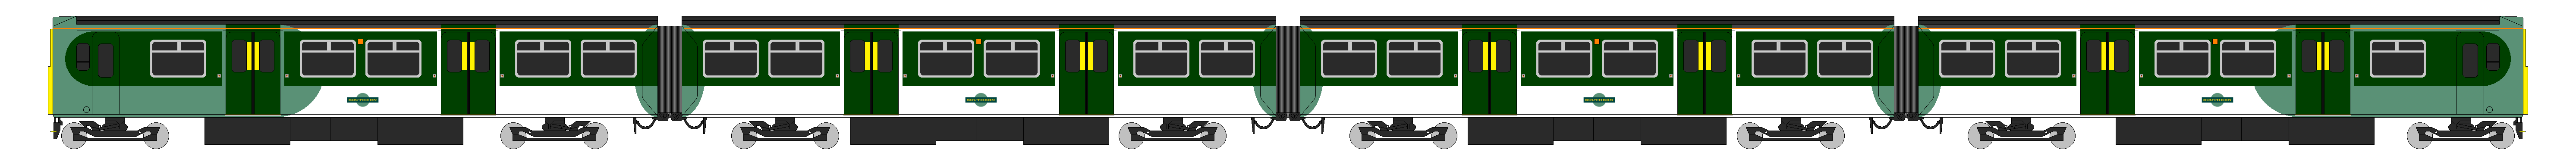 File:Class 455 Southern Diagram.png